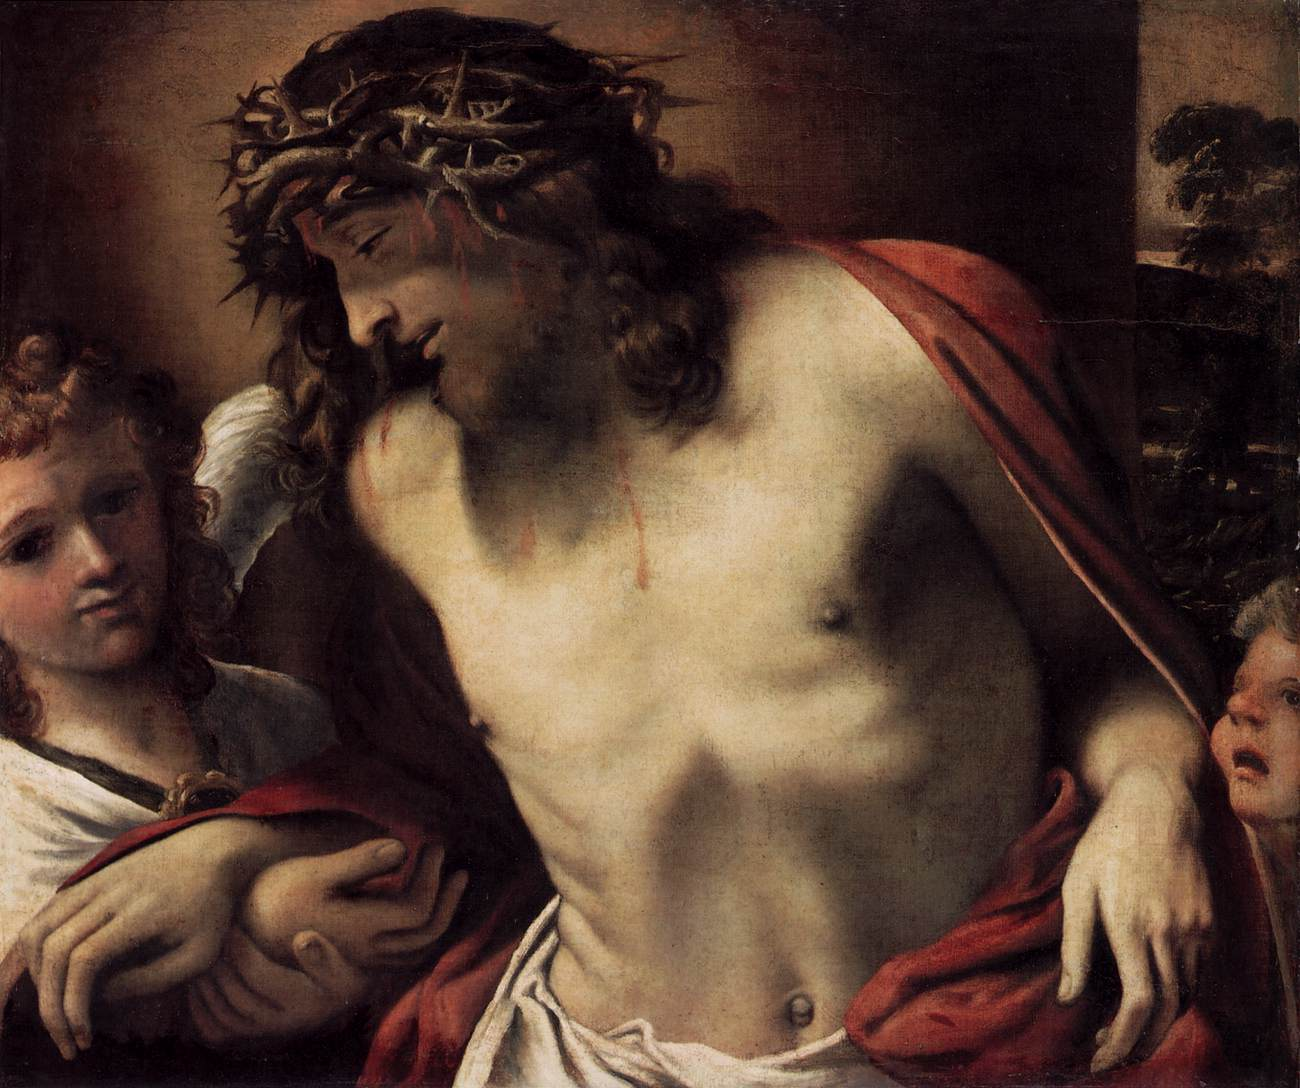 https://upload.wikimedia.org/wikipedia/commons/6/6e/Annibale_Carracci_-_Christ_Wearing_the_Crown_of_Thorns,_Supported_by_Angels_-_WGA04427.jpg